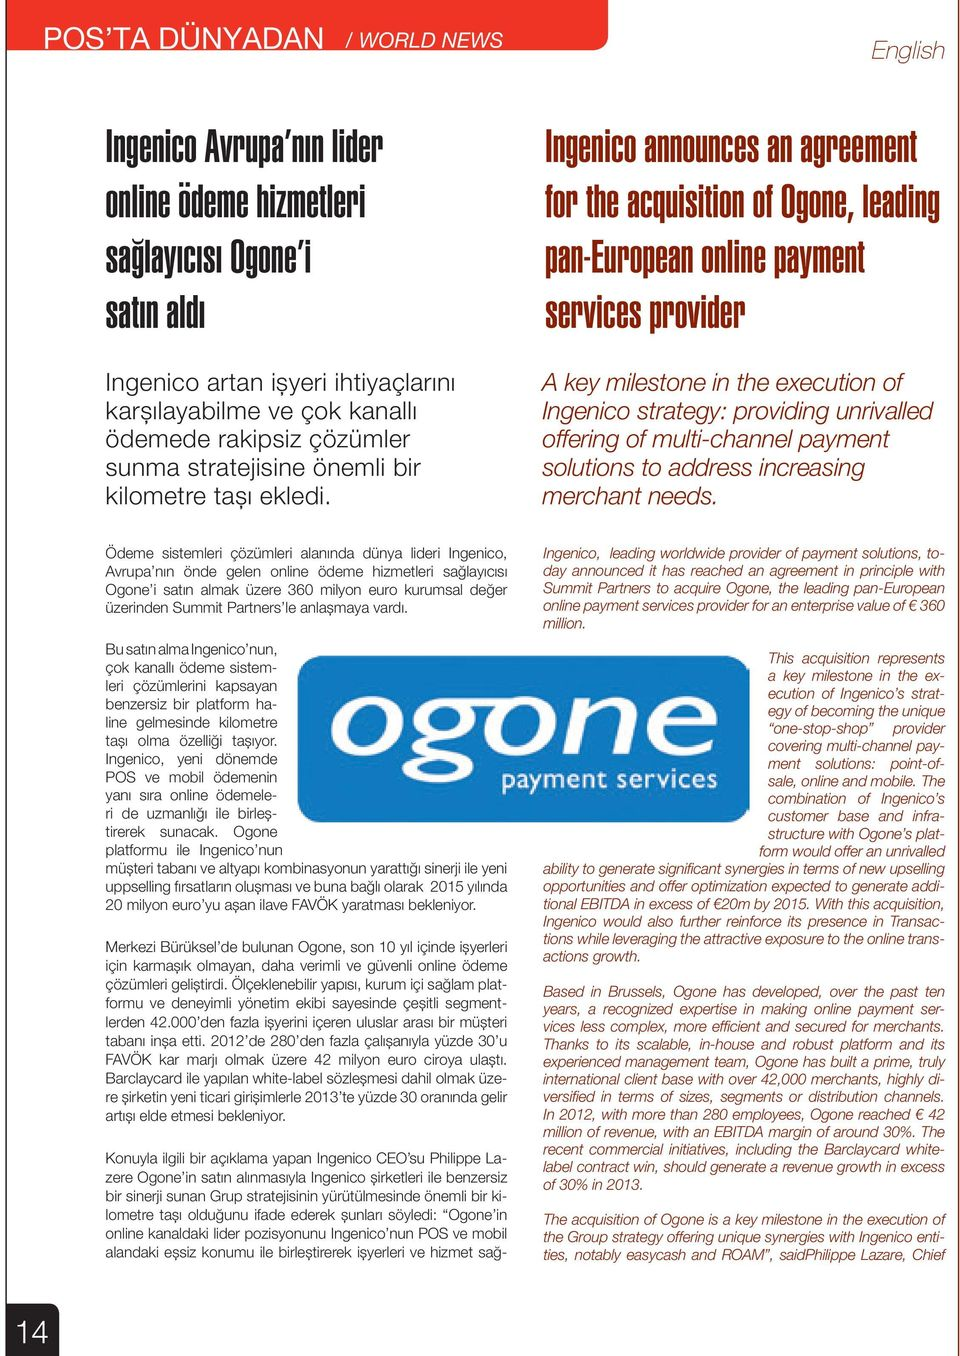 Ingenico announces an agreement for the acquisition of Ogone, leading pan-european online payment services provider A key milestone in the execution of Ingenico strategy: providing unrivalled